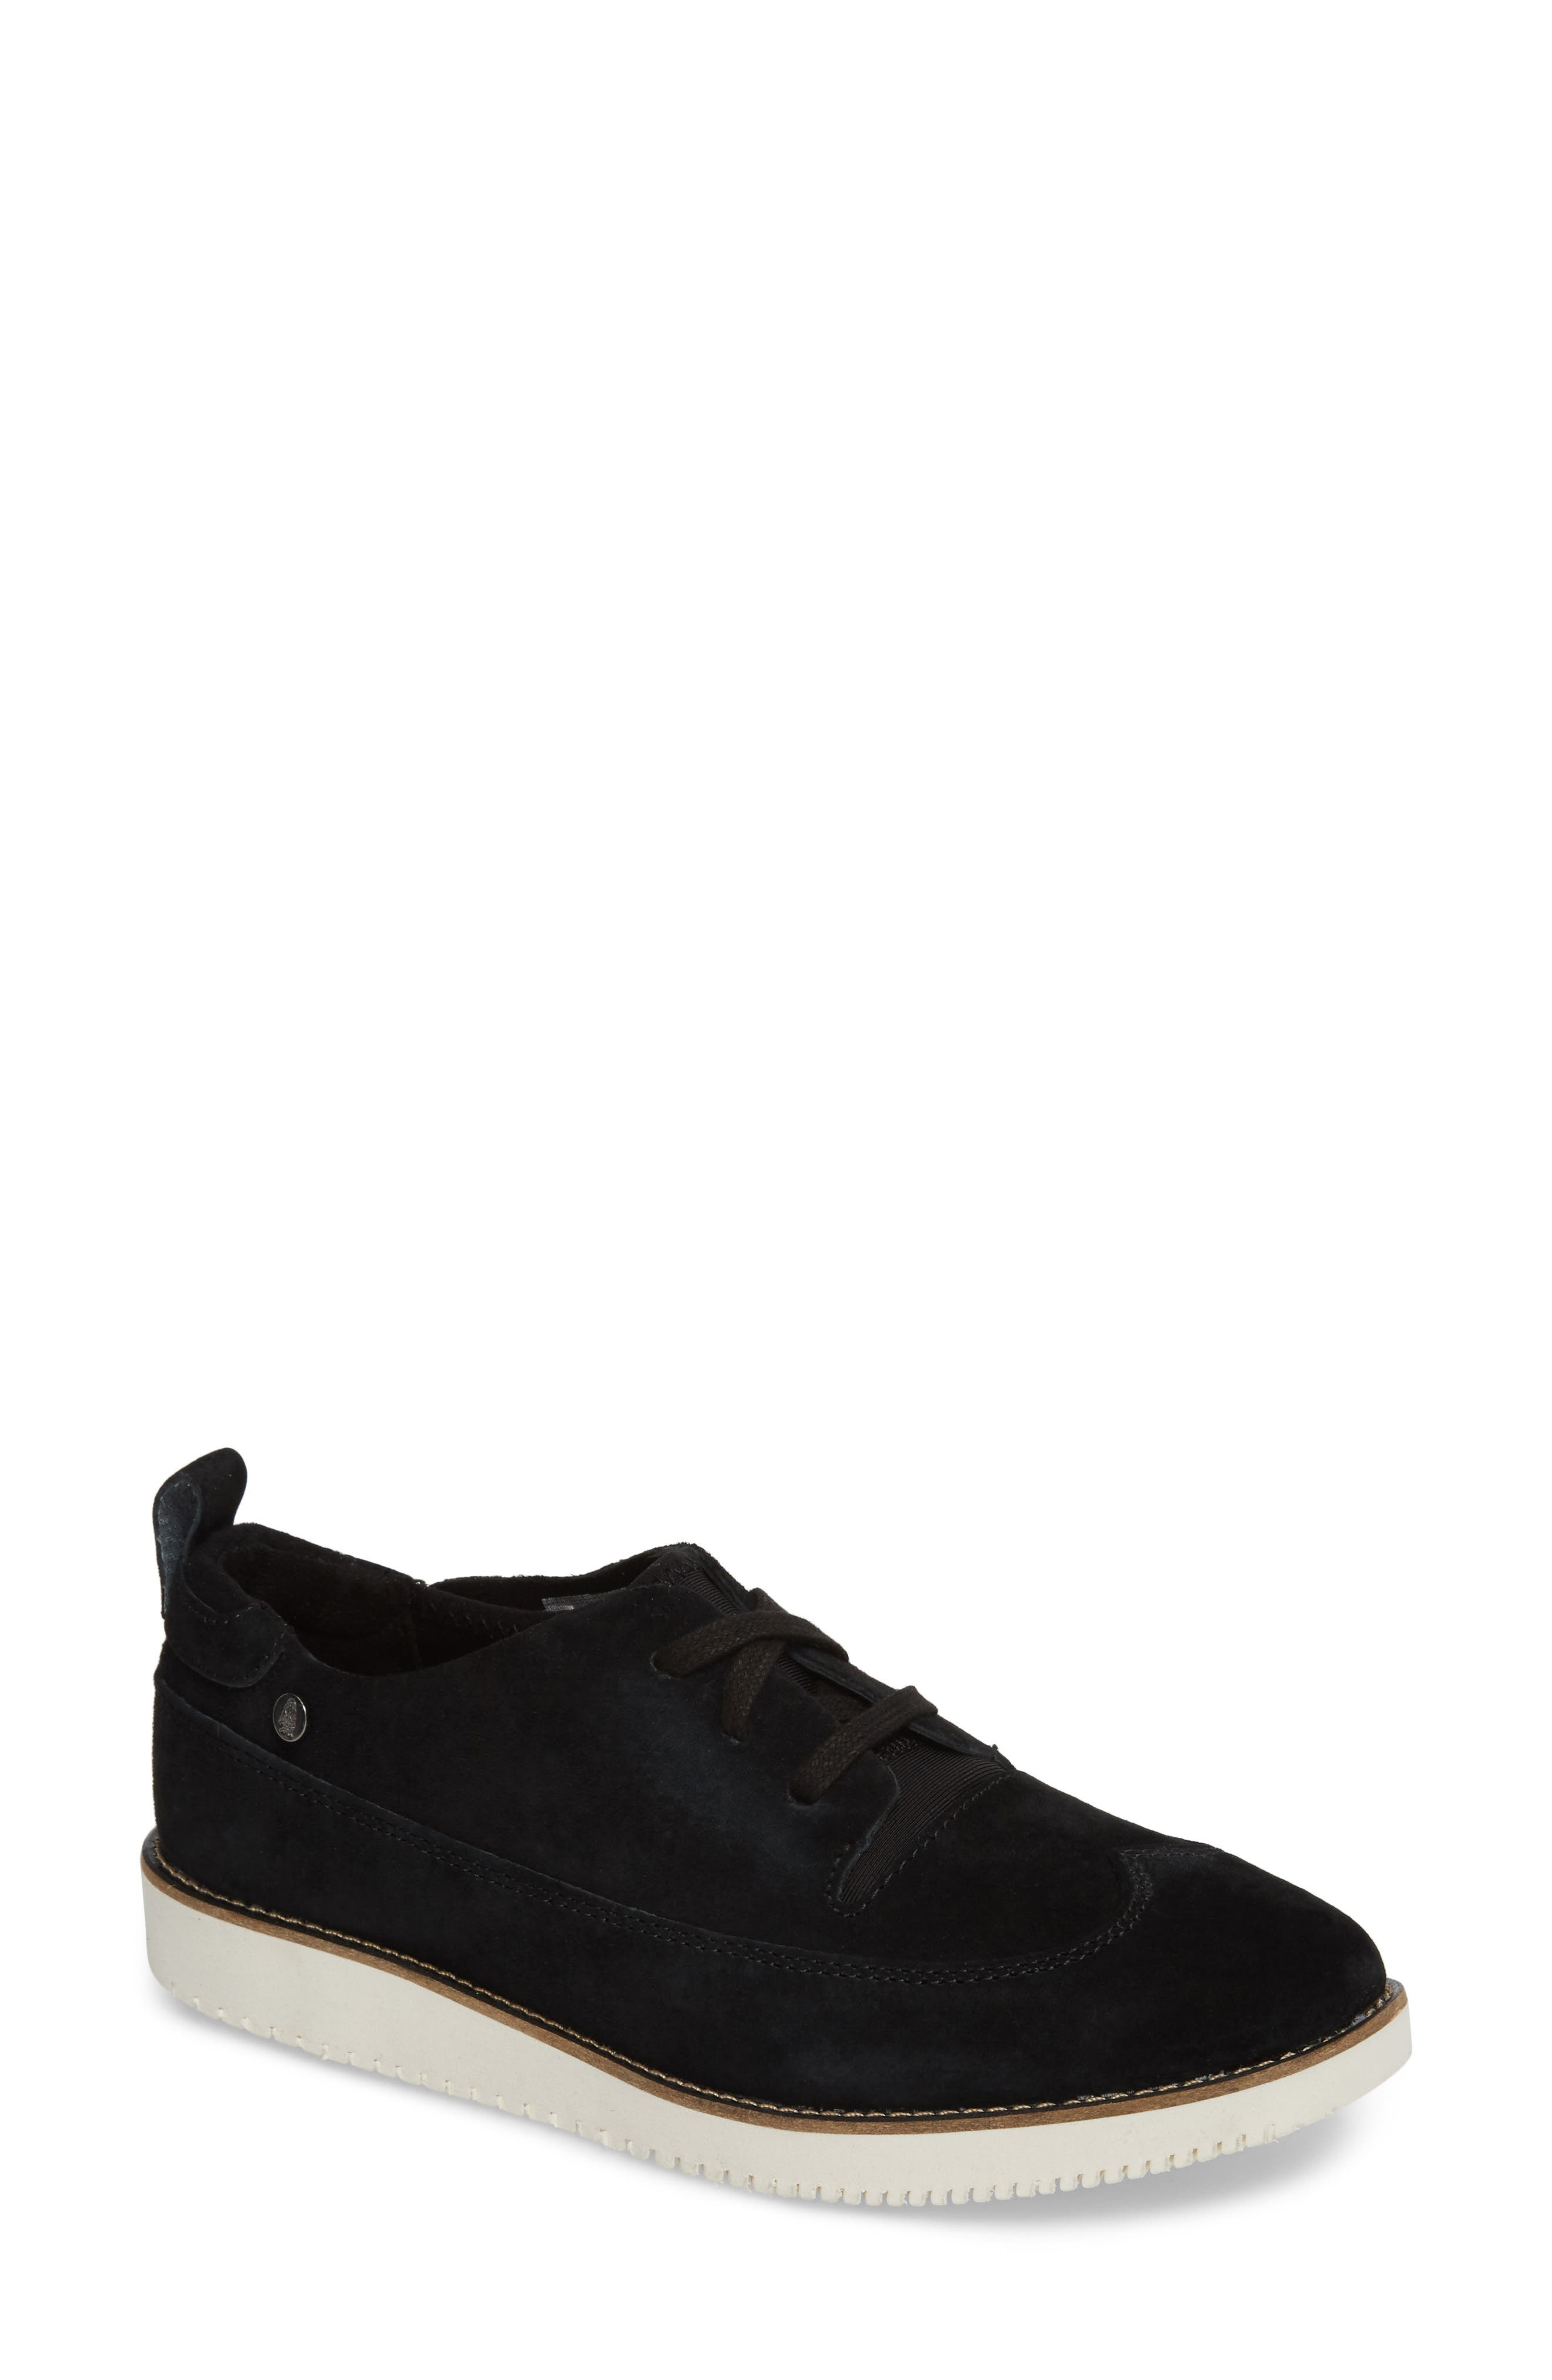 HUSH PUPPIES<SUP>®</SUP>, Chowchow Oxford, Main thumbnail 1, color, BLACK SUEDE